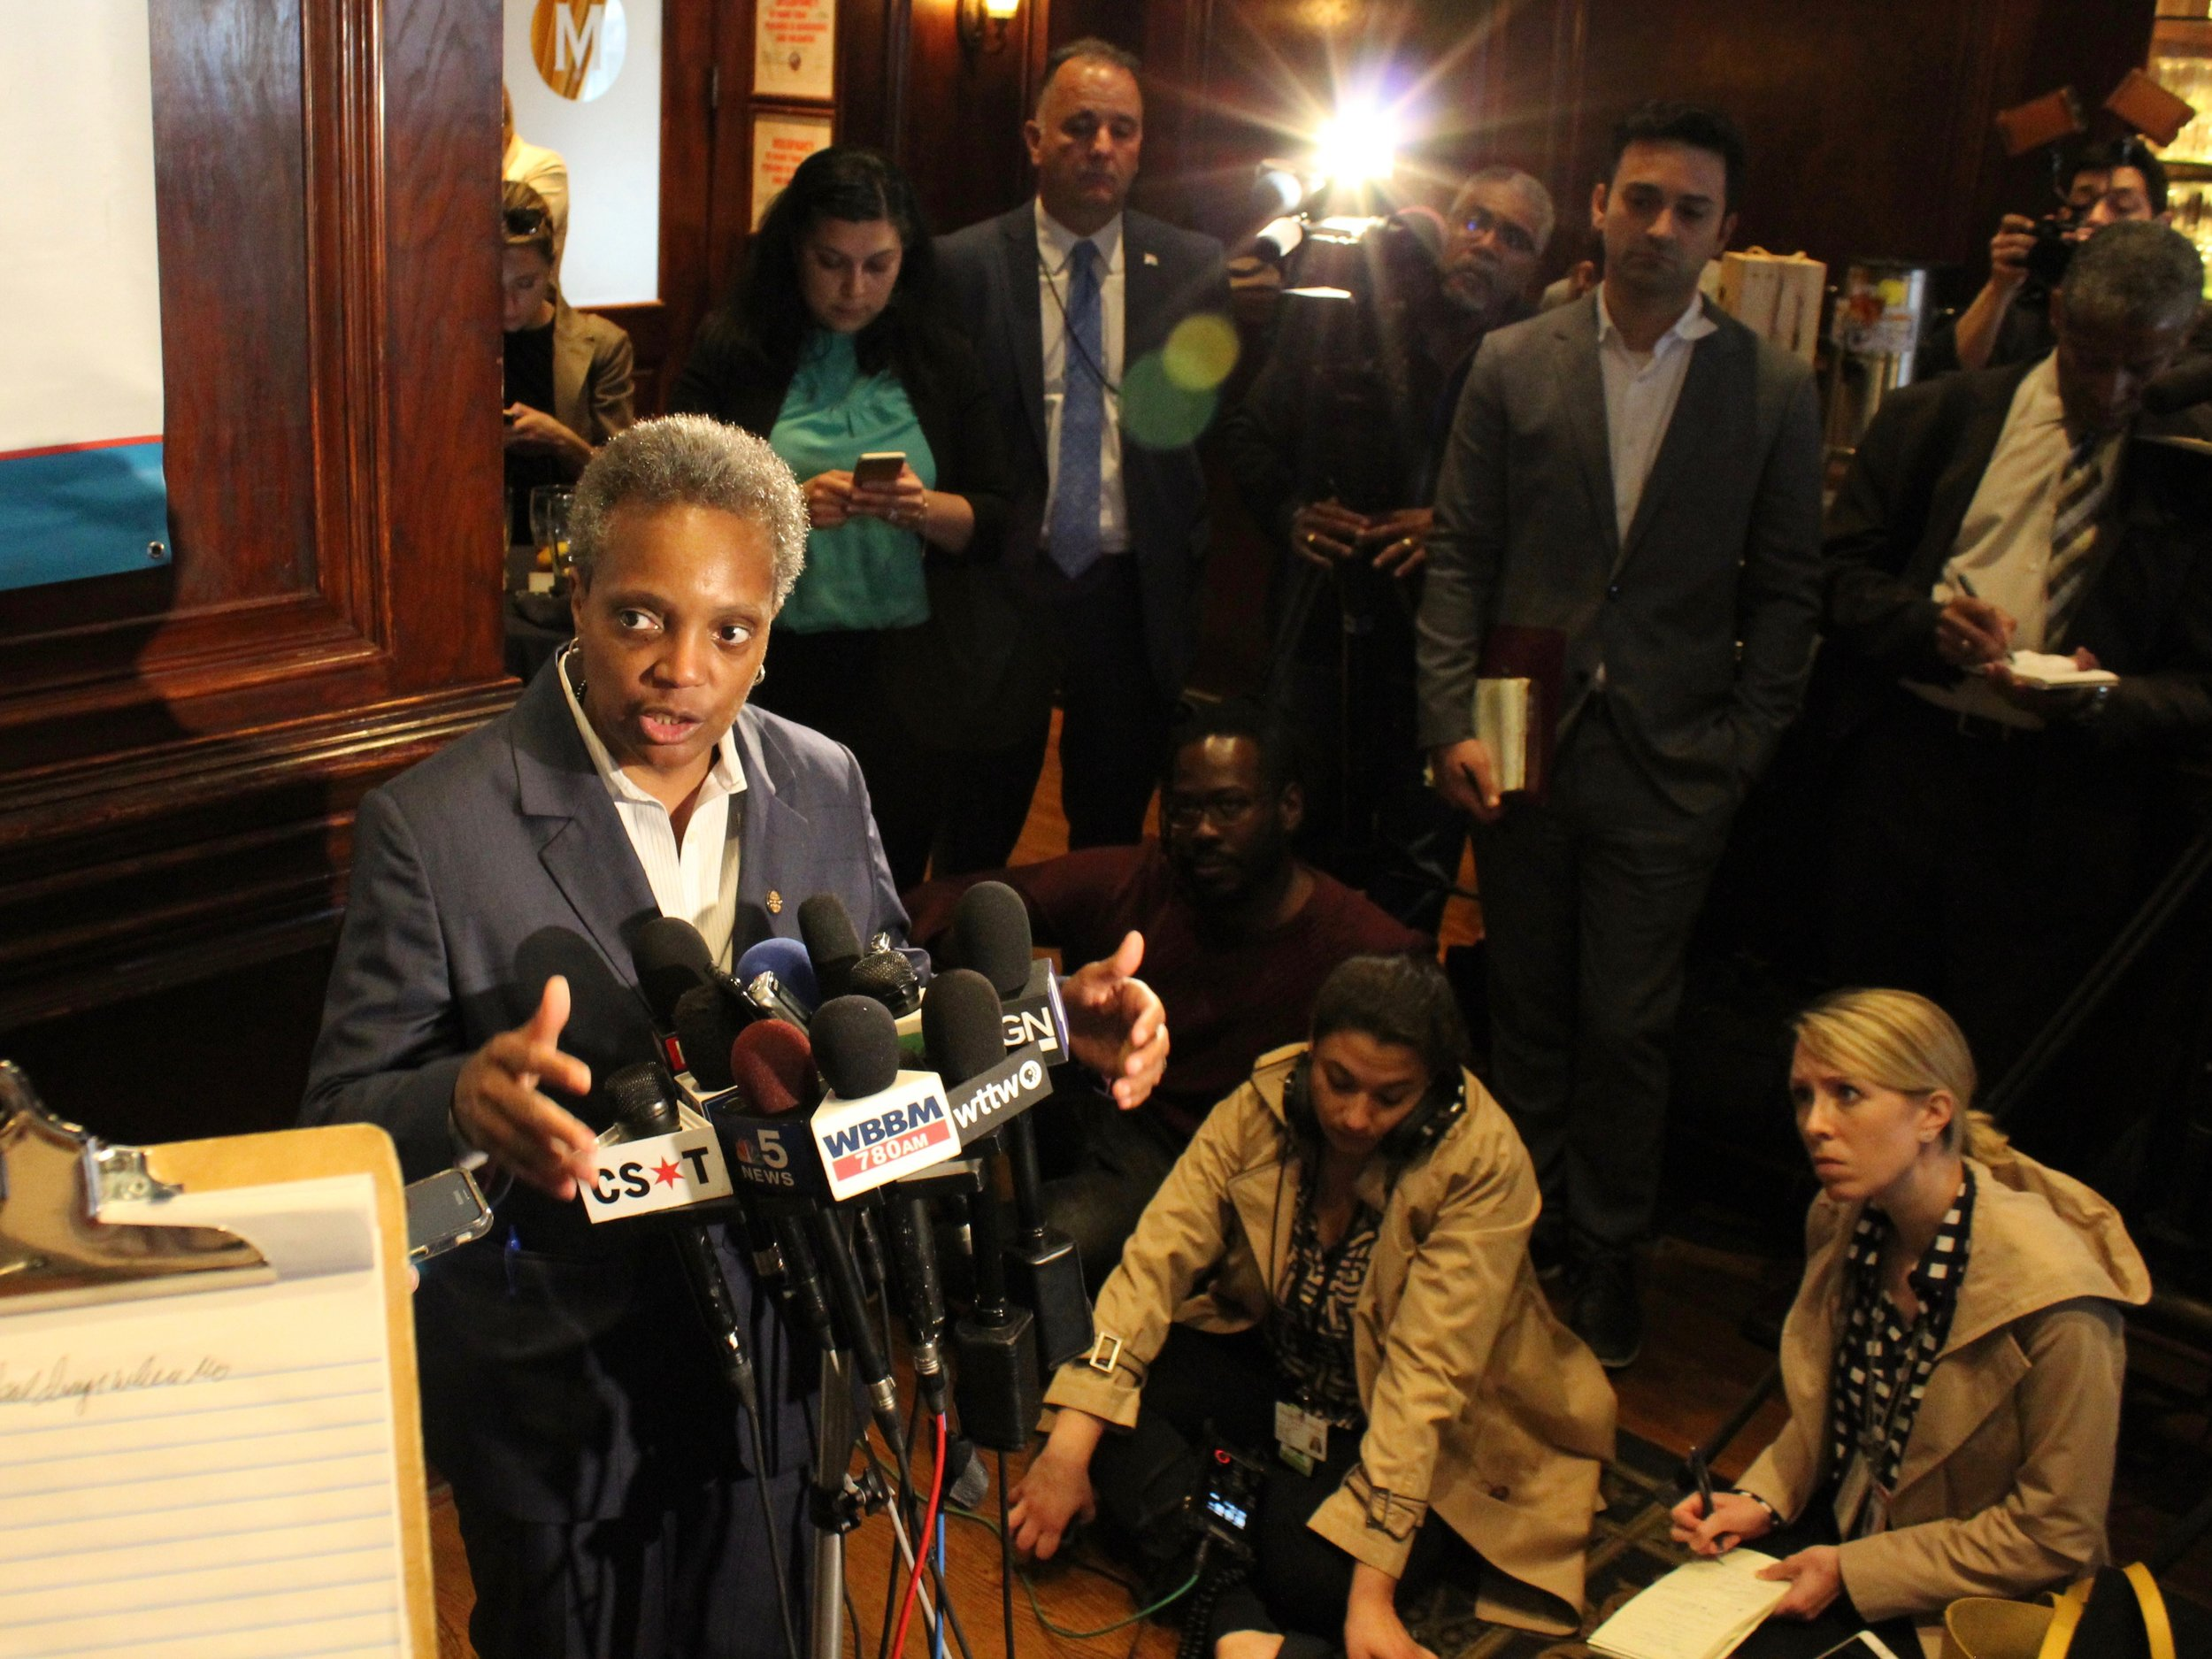 Mayor Lori Lightfoot talks with reporters after her appearance Tuesday at the City Club of Chicago luncheon at Maggiano's Banquets. (One Illinois/Ted Cox)